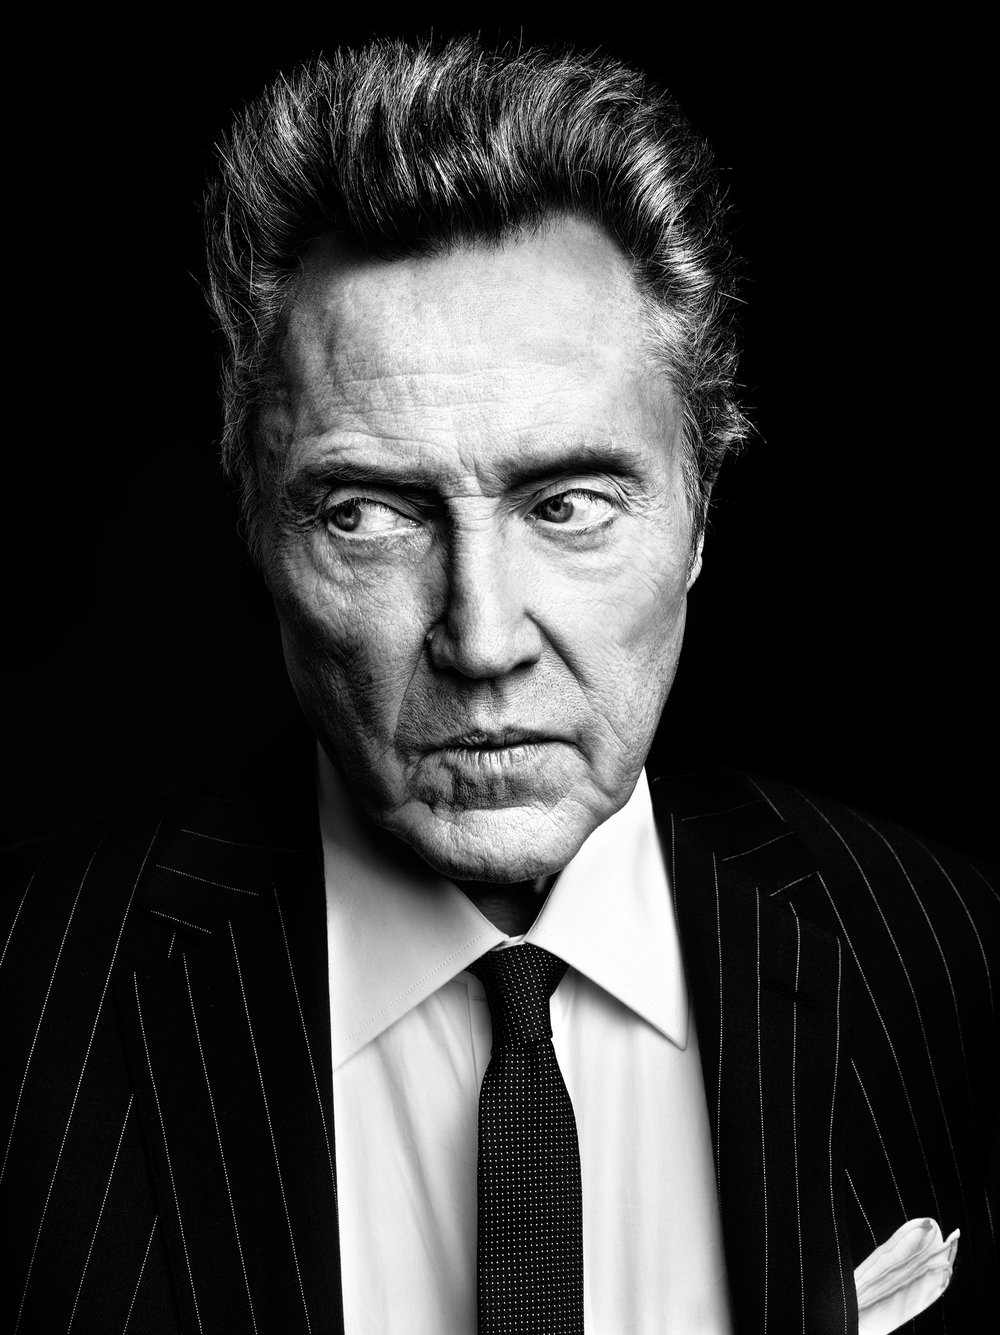 CHRISTOPHER_WALKEN_0132TPK_F5.jpg